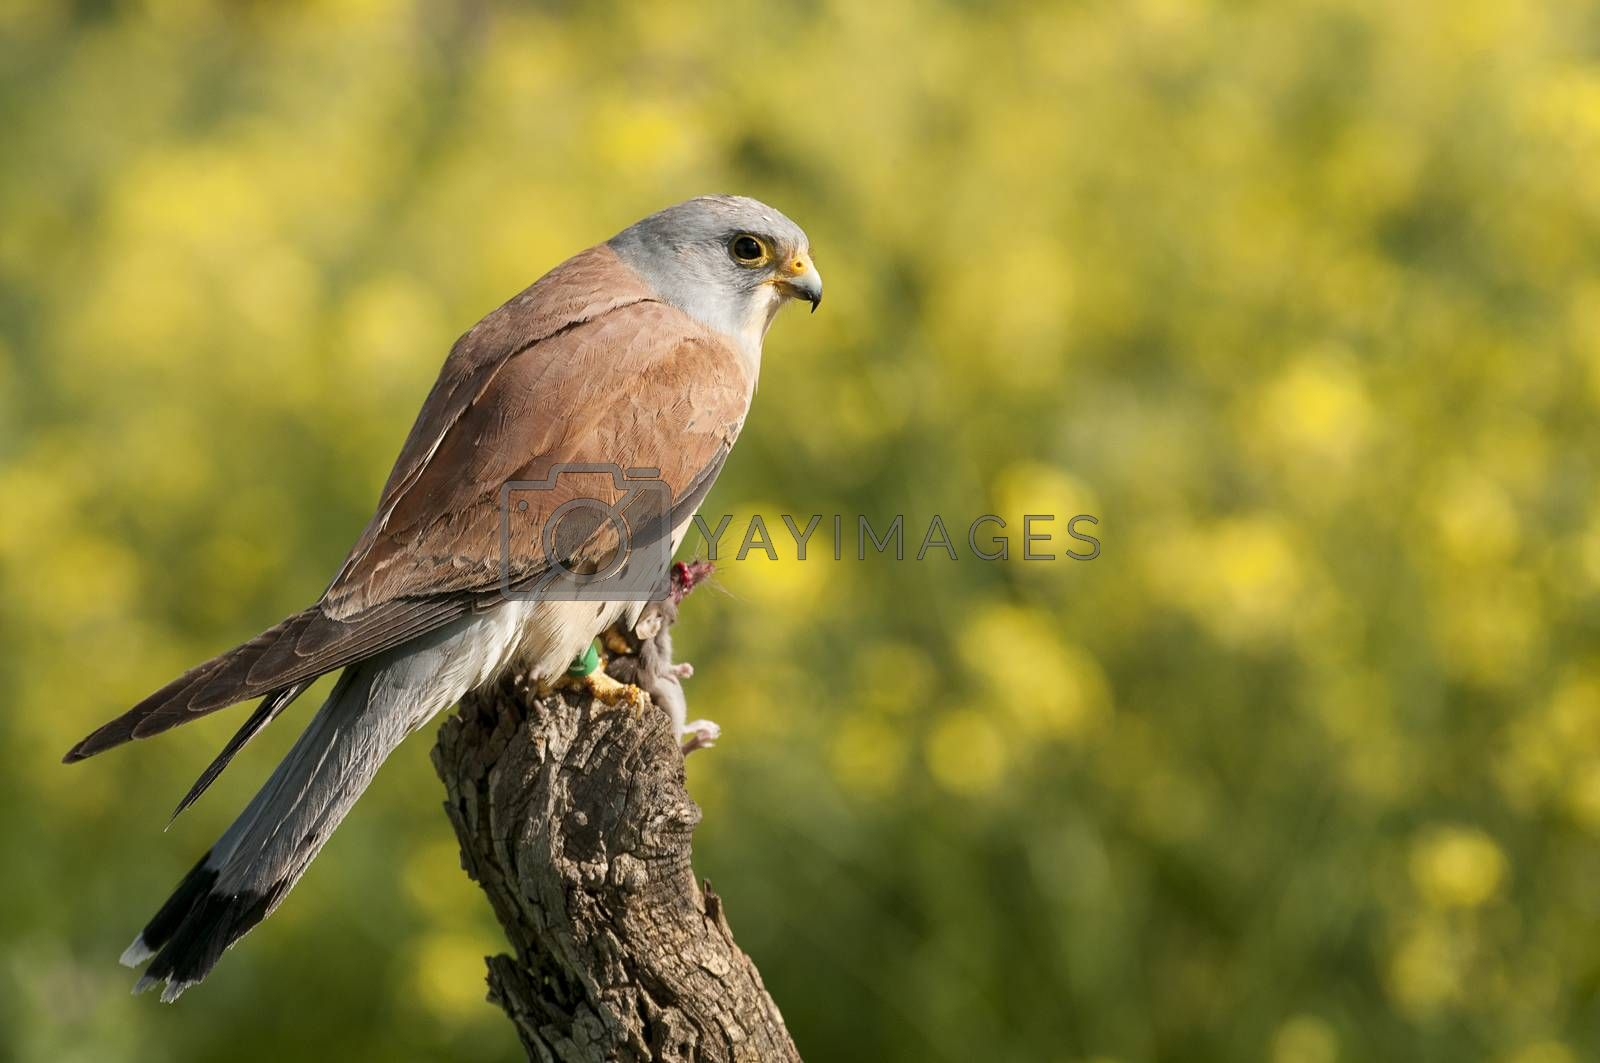 Lesser kestrel, male, eating a mouse, Falco naumann